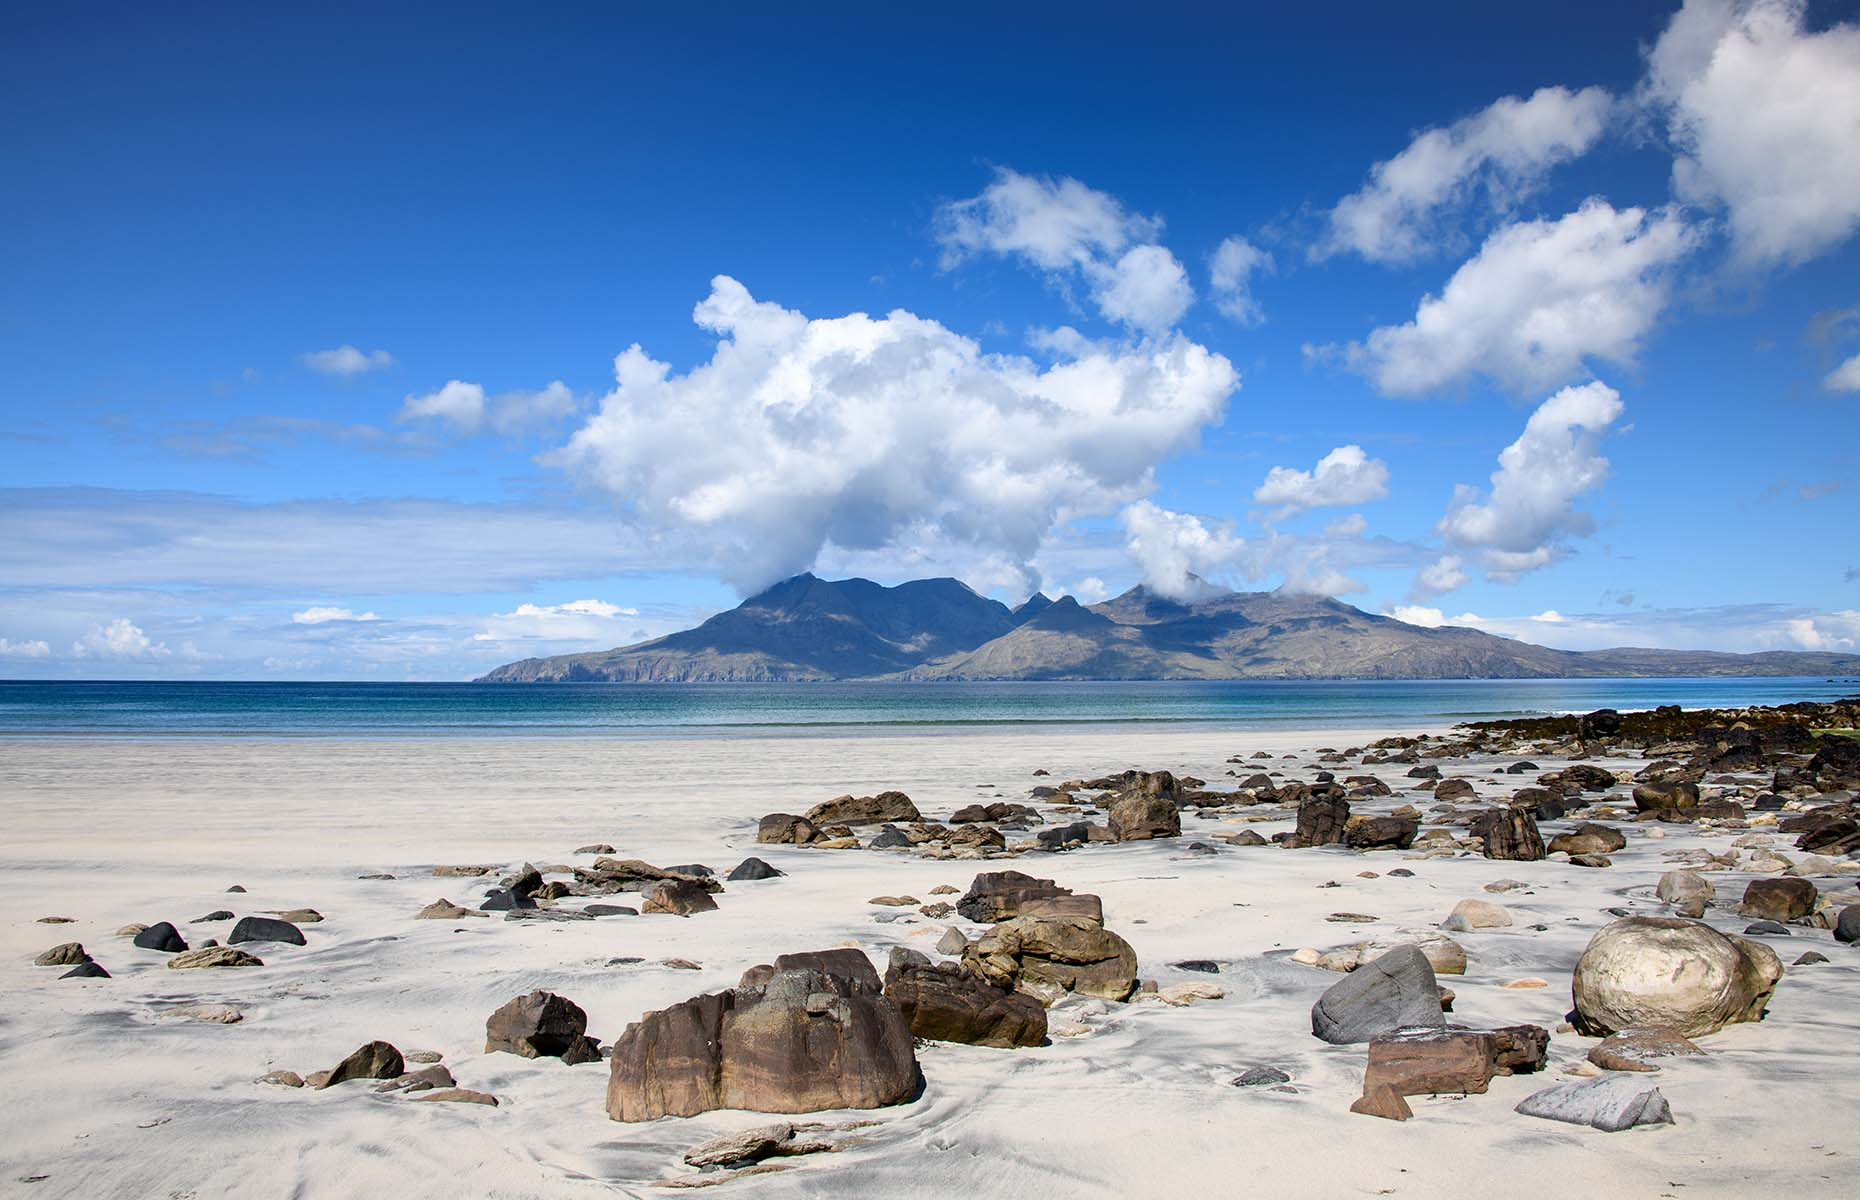 Isle of Eigg in Scotland (Image: Gwyneth Bell/Shutterstock)